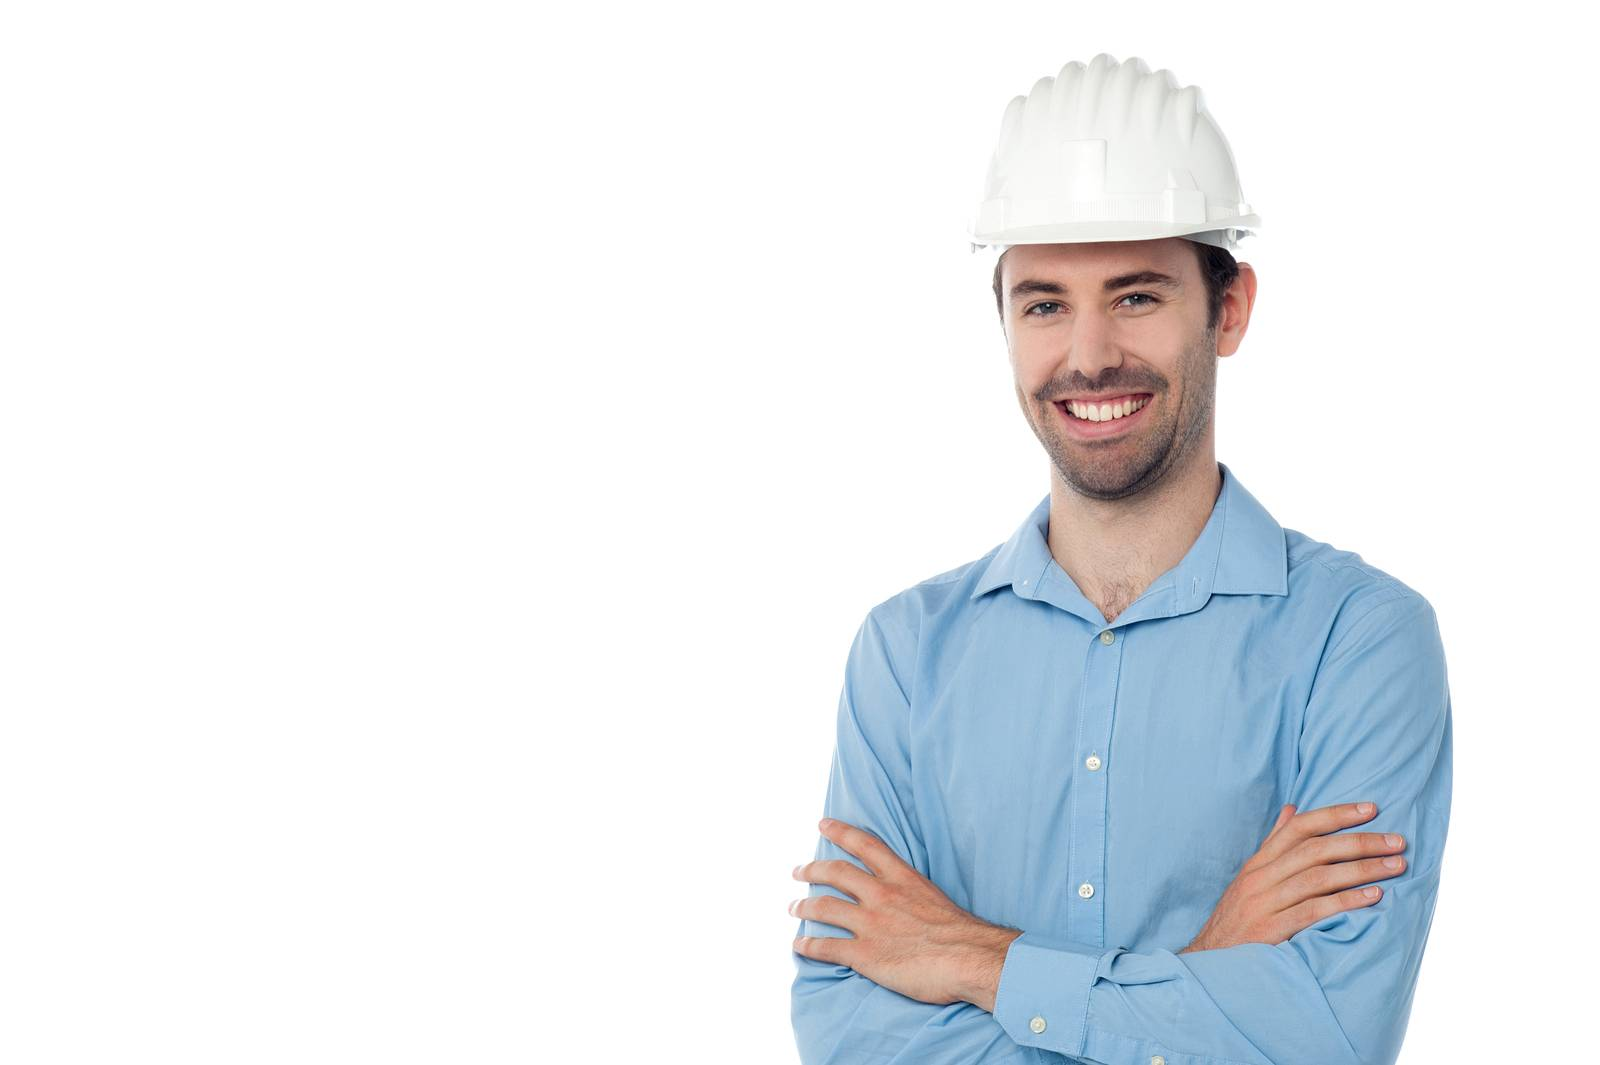 architect, arms crossed, arms folded, caucasian, civil, engineer - D15002002